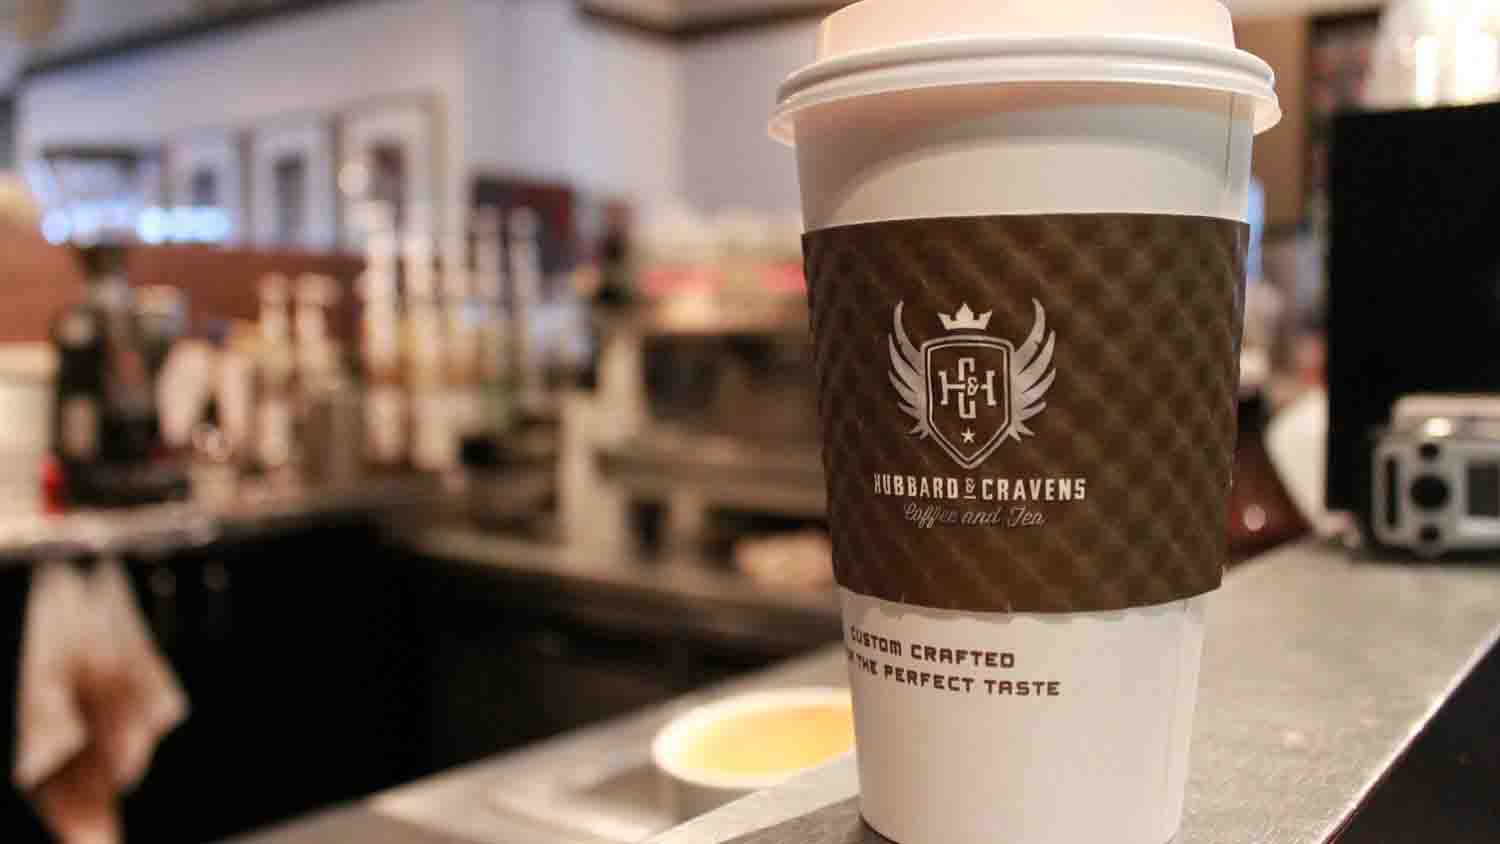 Hubbard & Cravens Coffee Co. - Downtown Indy